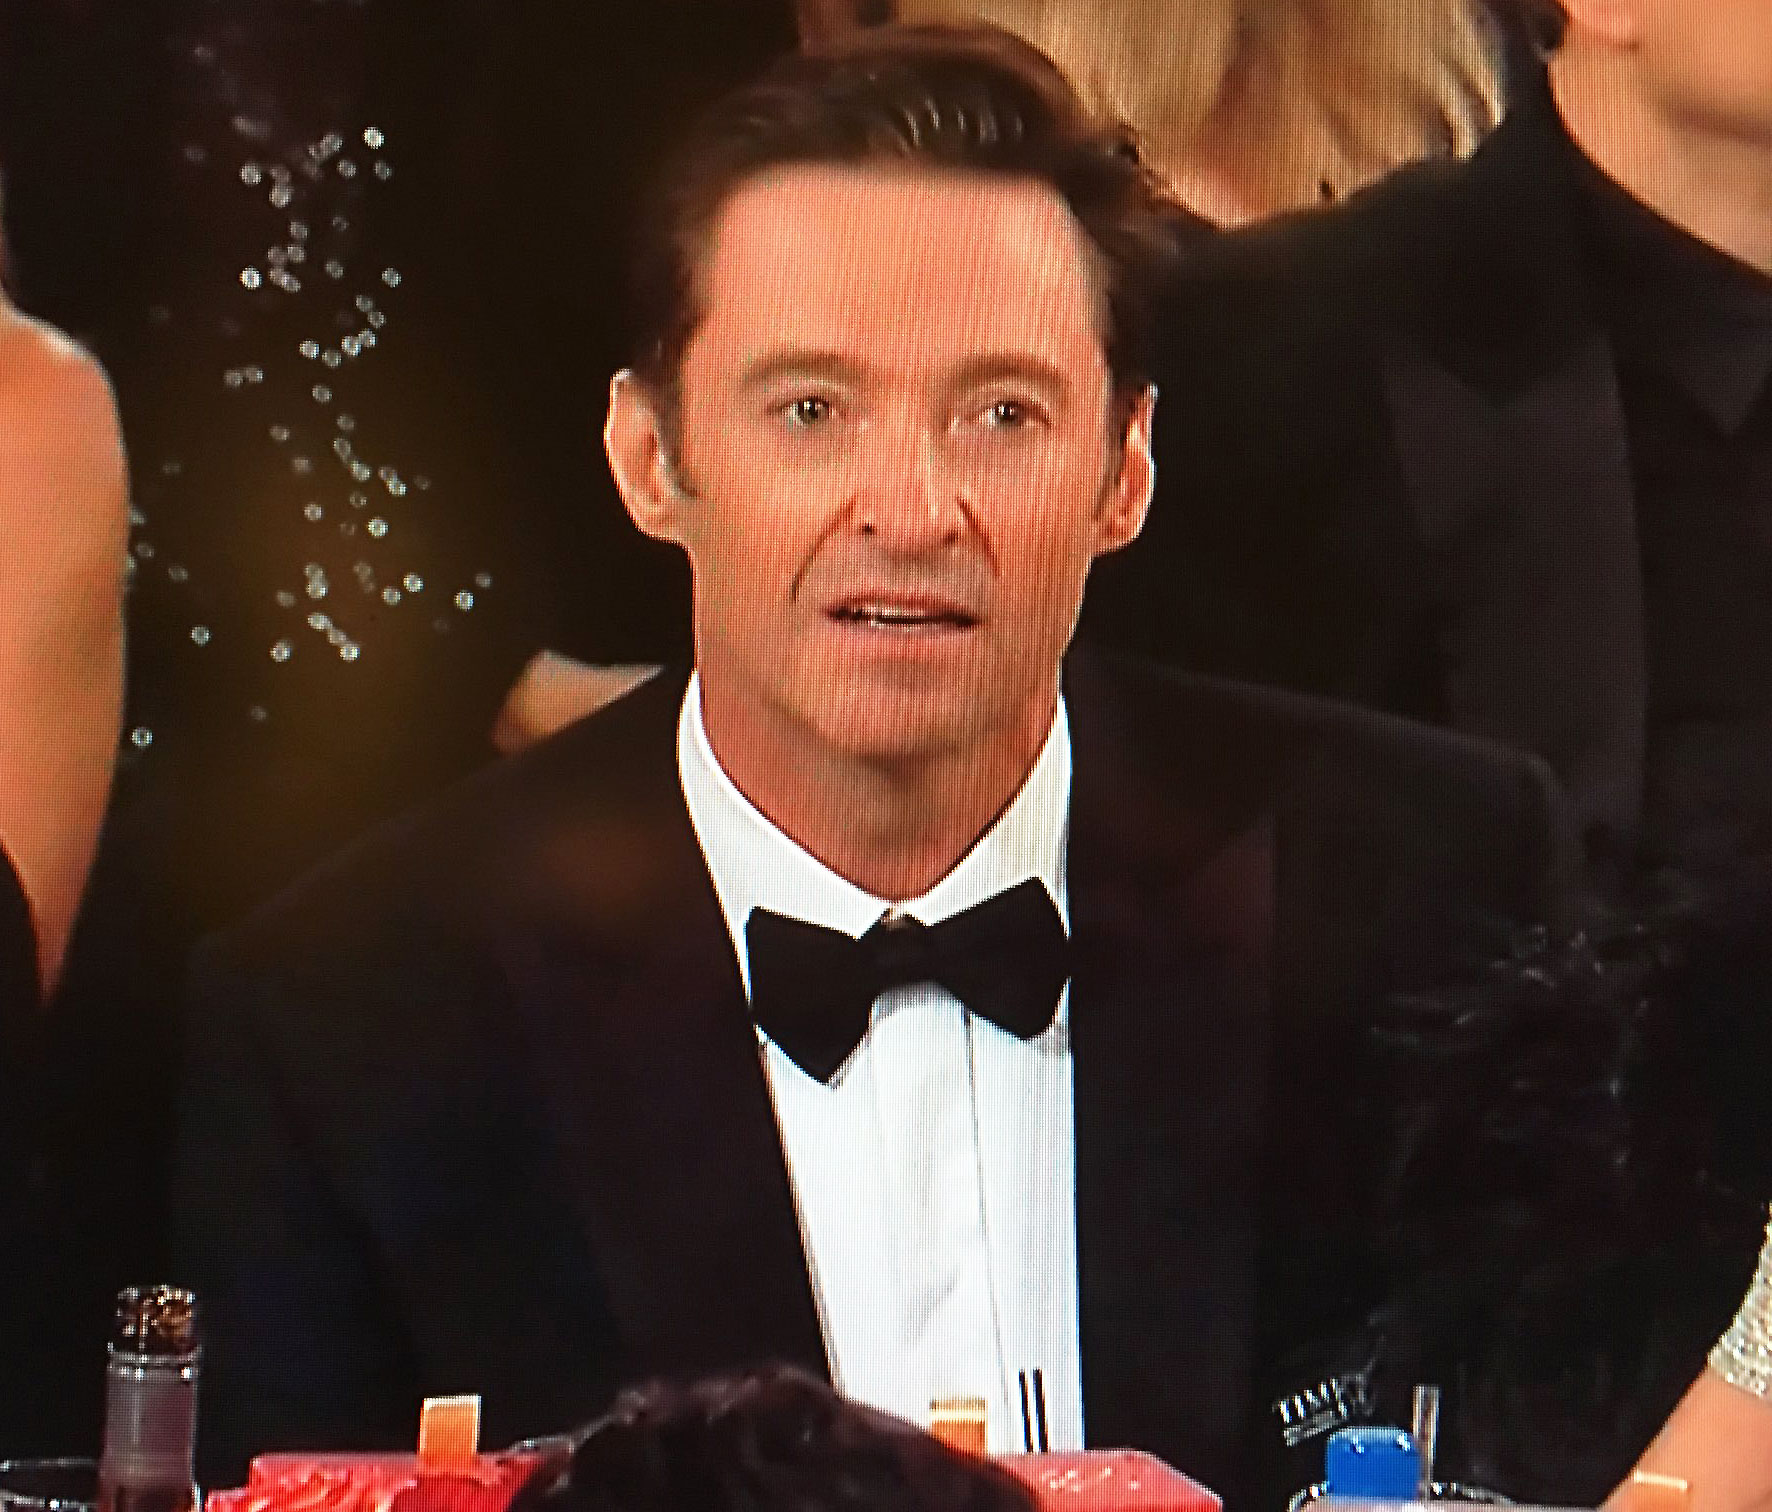 Awards Shows Audience Reactions Hugh Jackman Golden Globes 2018 - The actor couldn't hide his shock after he lost Best Actor in a Motion Picture, Musical or Comedy, to James Franco at 2018 the Golden Globes.